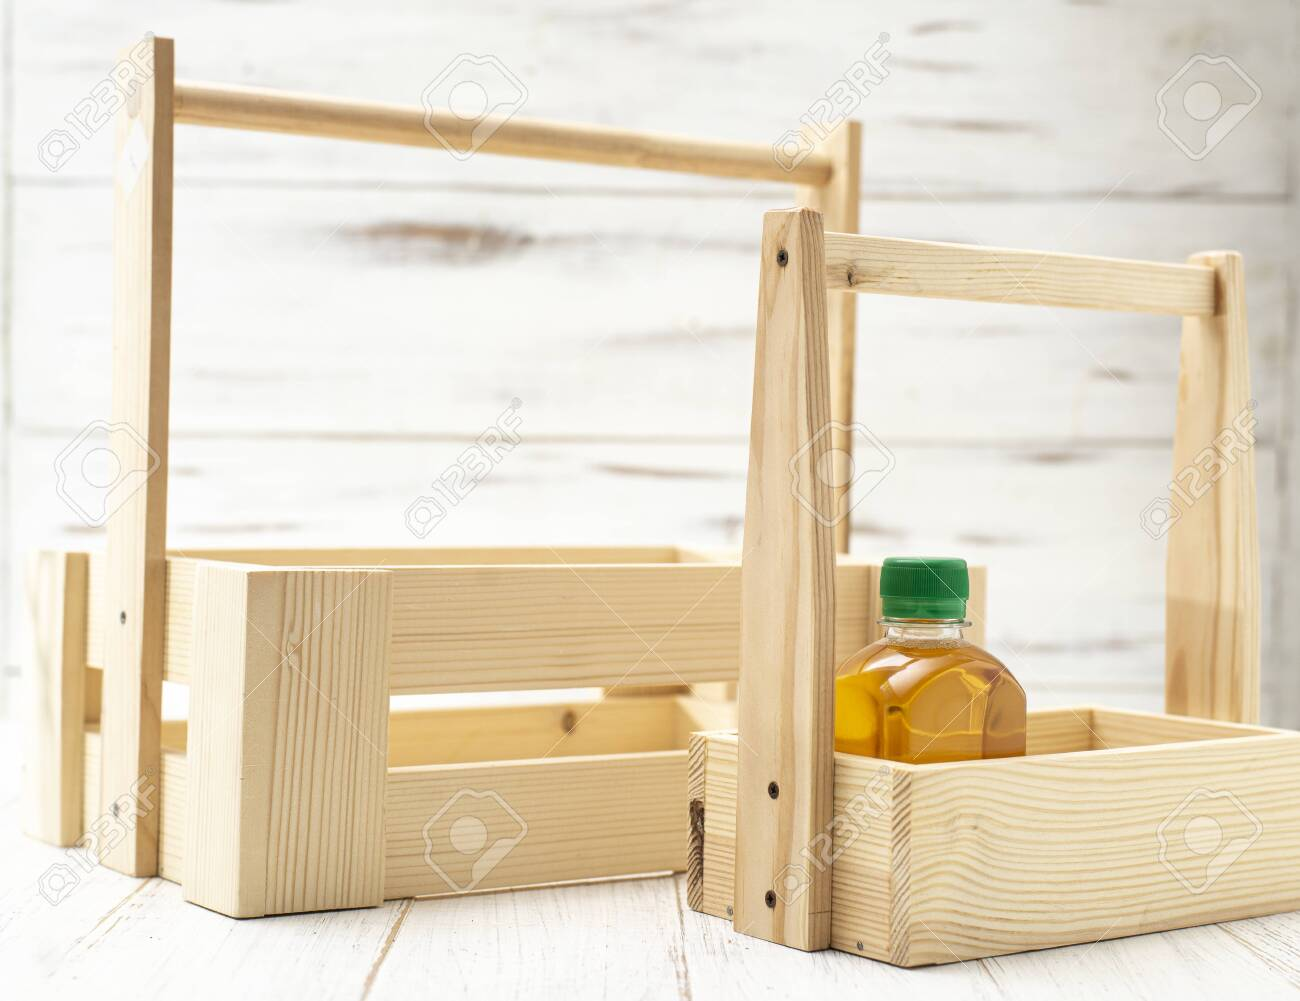 Wooden Boxes With A Jar Of Oil Decorative Boxes Made From Natural Stock Photo Picture And Royalty Free Image Image 153355605